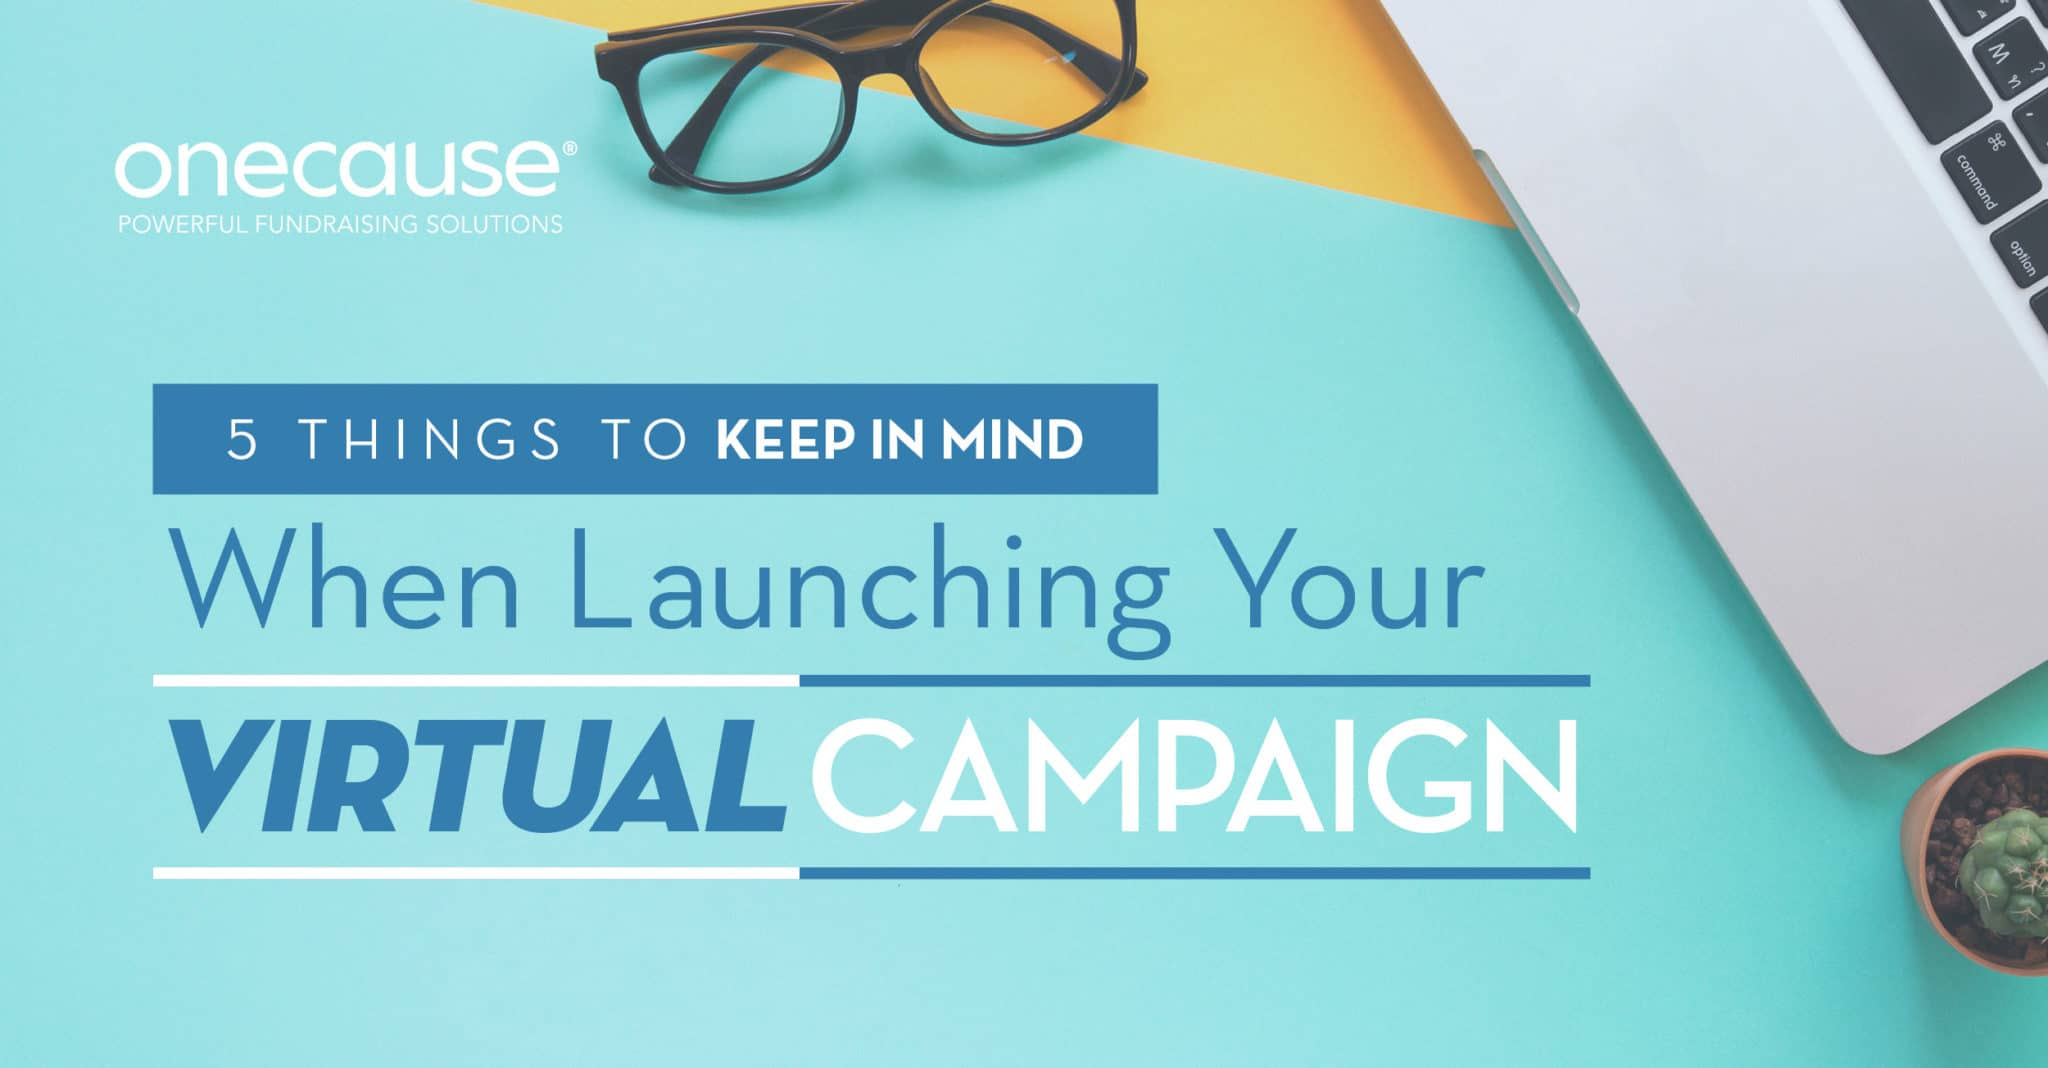 5 Things to Keep in Mind When Launching Your Virtual Campaign